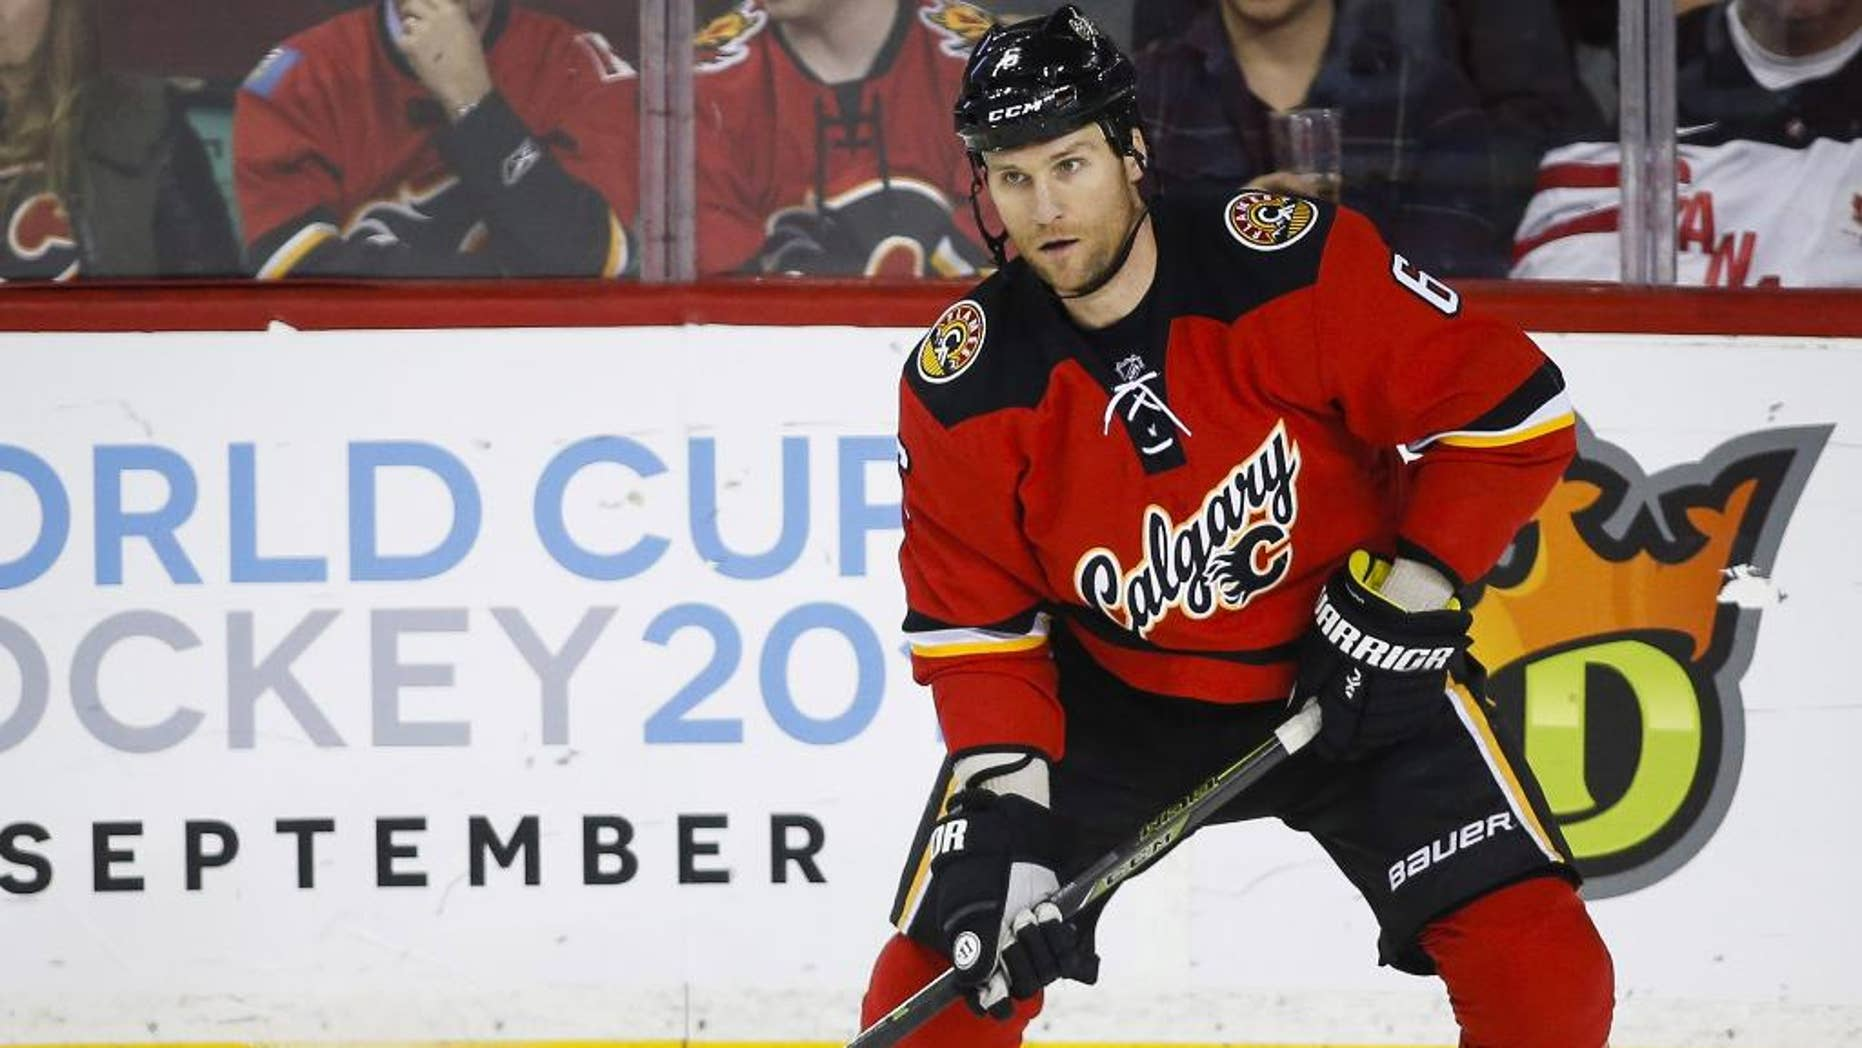 File-This March 11, 2016, file photo shows Calgary Flames' Dennis Wideman handling the puck during the first period of an NHL hockey game against the Arizona Coyotes,in Calgary, Alberta. The national Hockey League asked a Manhattan federal court judge Wednesday, June 8, 2016, to reject the reduction of Calgary Flames defenseman Dennis Wideman's suspension for knocking down a linesman. An independent arbitrator reduced Wideman's suspension from 20 games to 10 after ruling that Wideman did not intend to injure linesman Don Henderson in Jan. 27 game against the Nashville Predators. The suspension has already been served. (Jeff McIntosh/The Canadian Press via AP) MANDATORY CREDIT